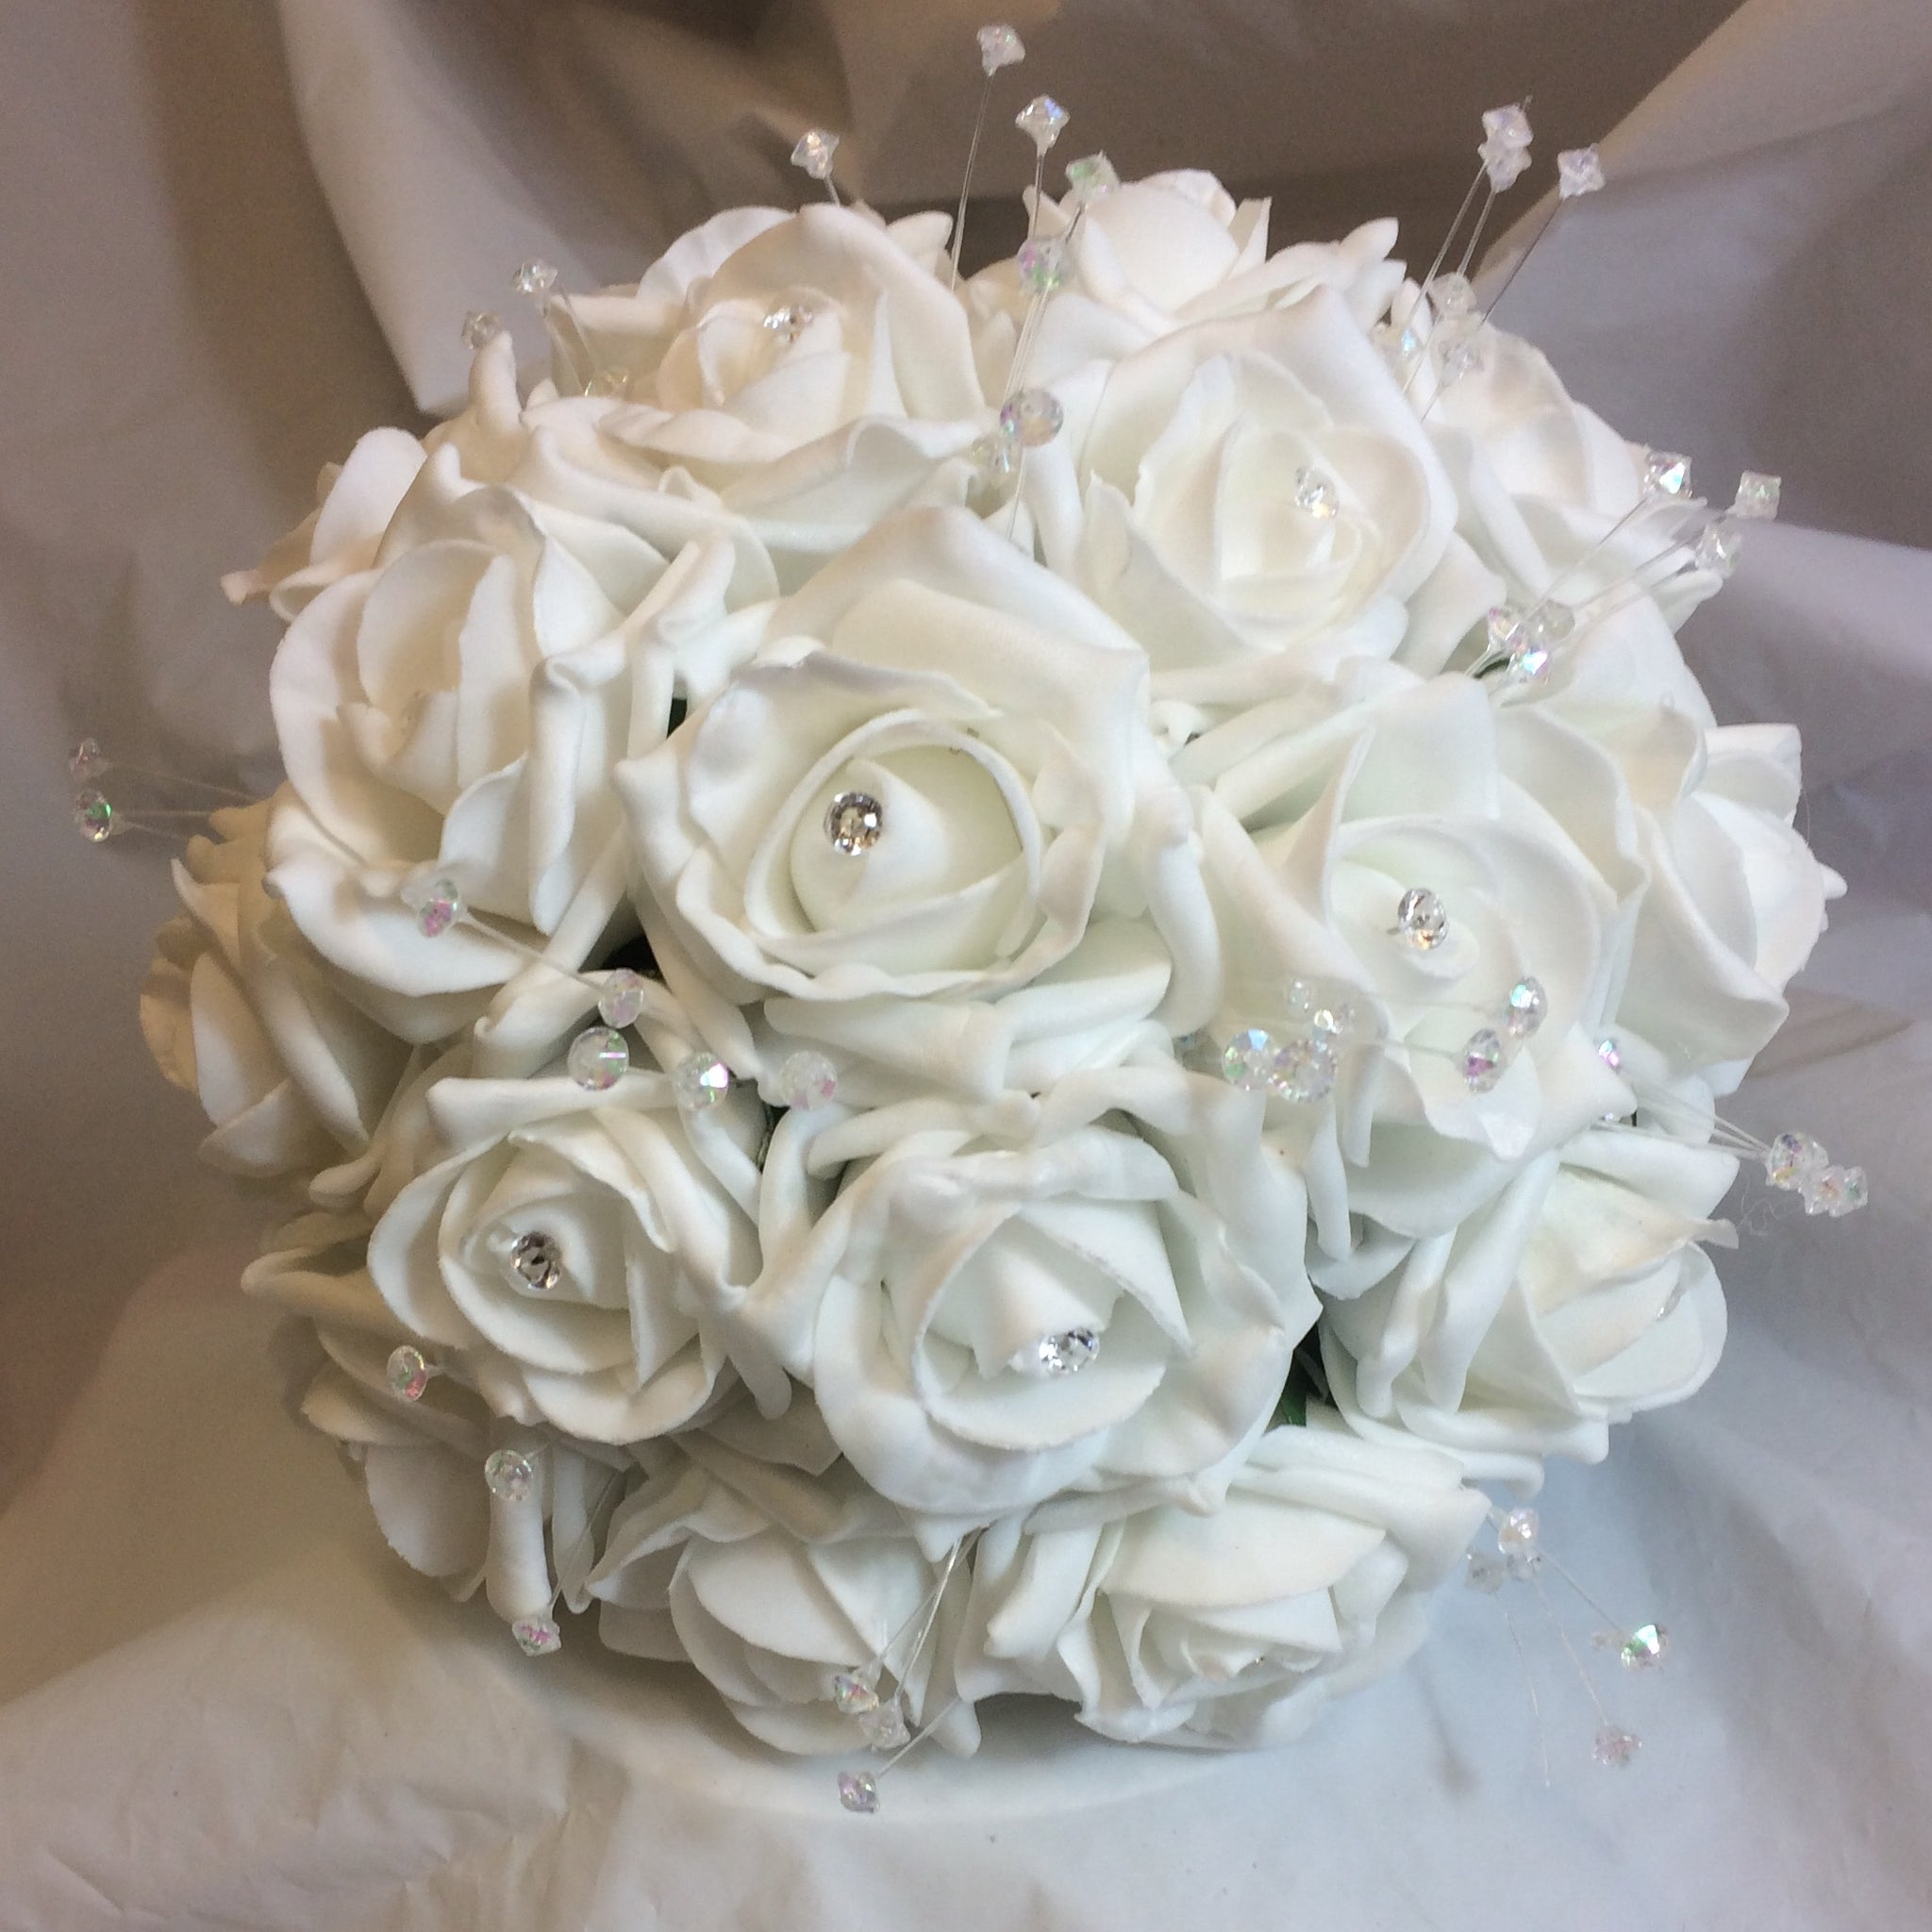 A Wedding Bouquet Collection Featuring White Foam Roses With